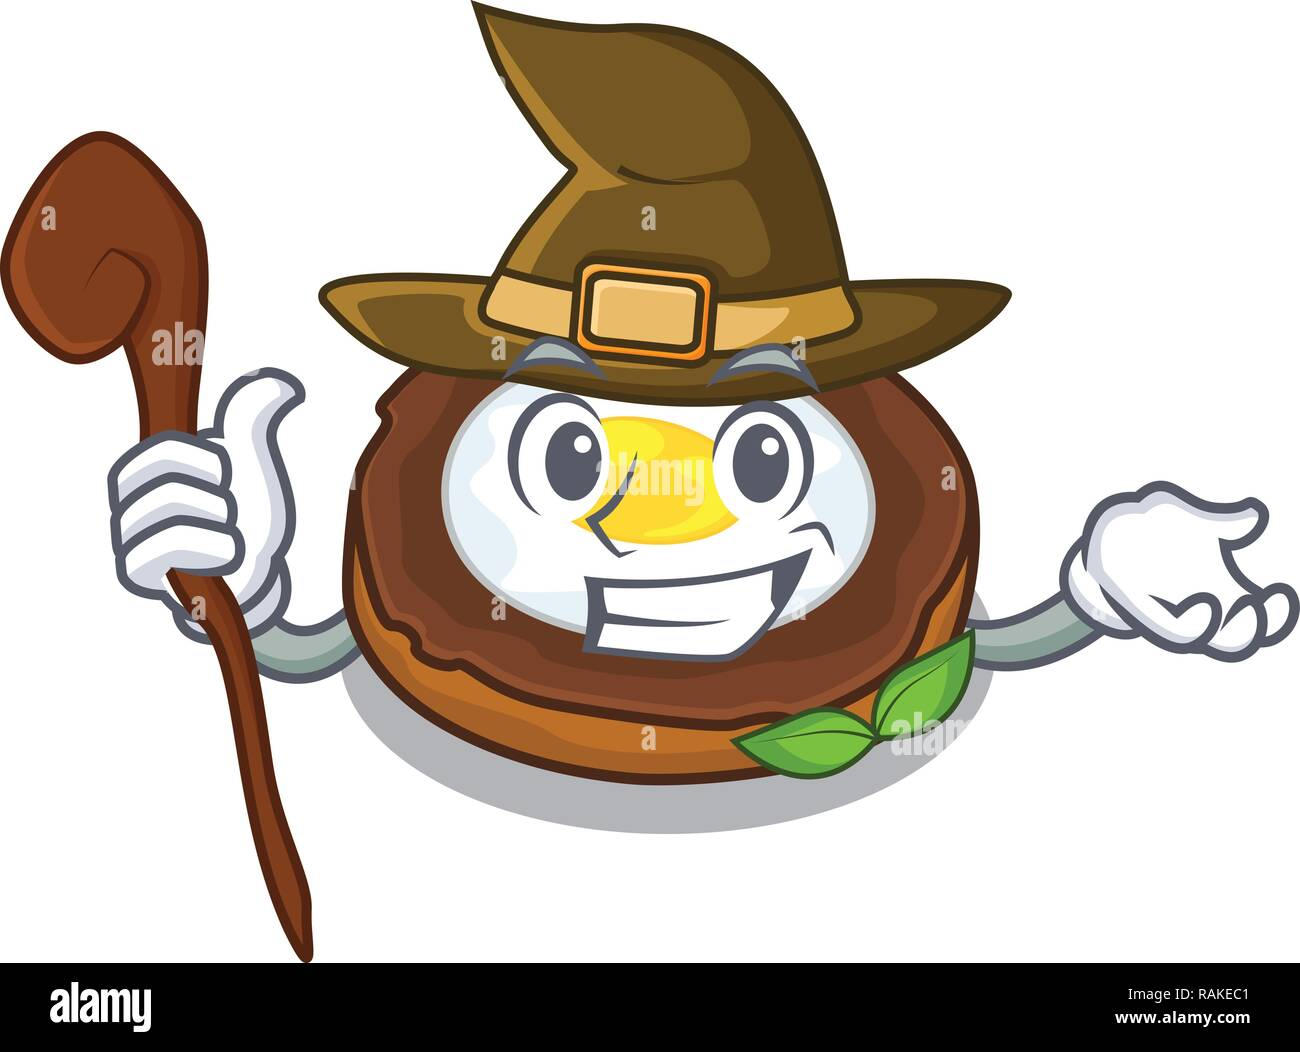 Witch egg scotch on character wood boards - Stock Vector